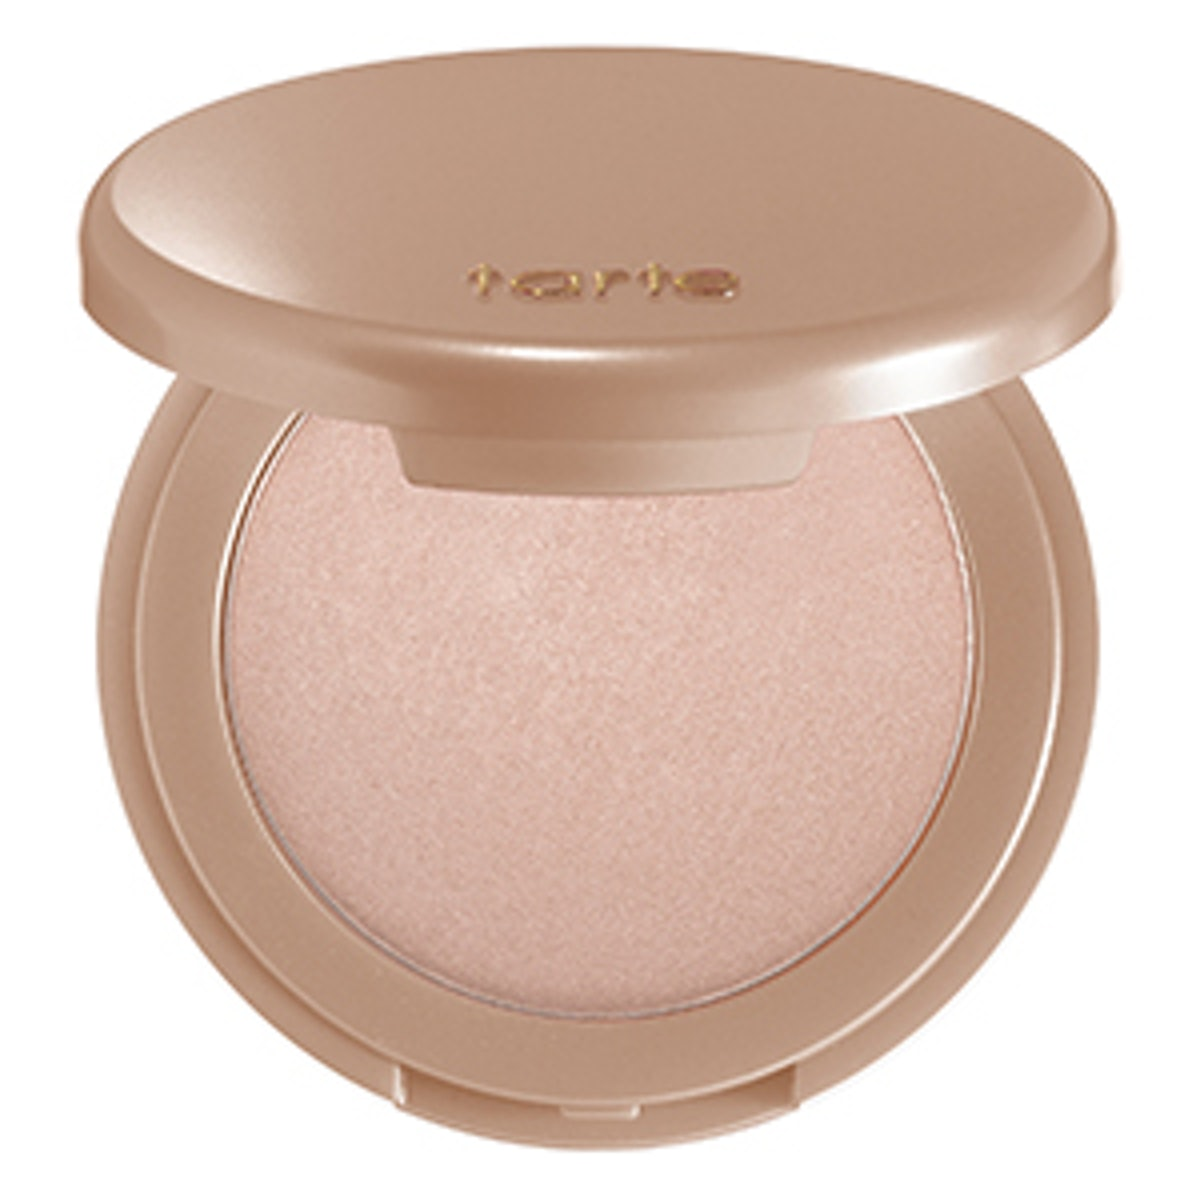 Clay Highlighter in Exposed